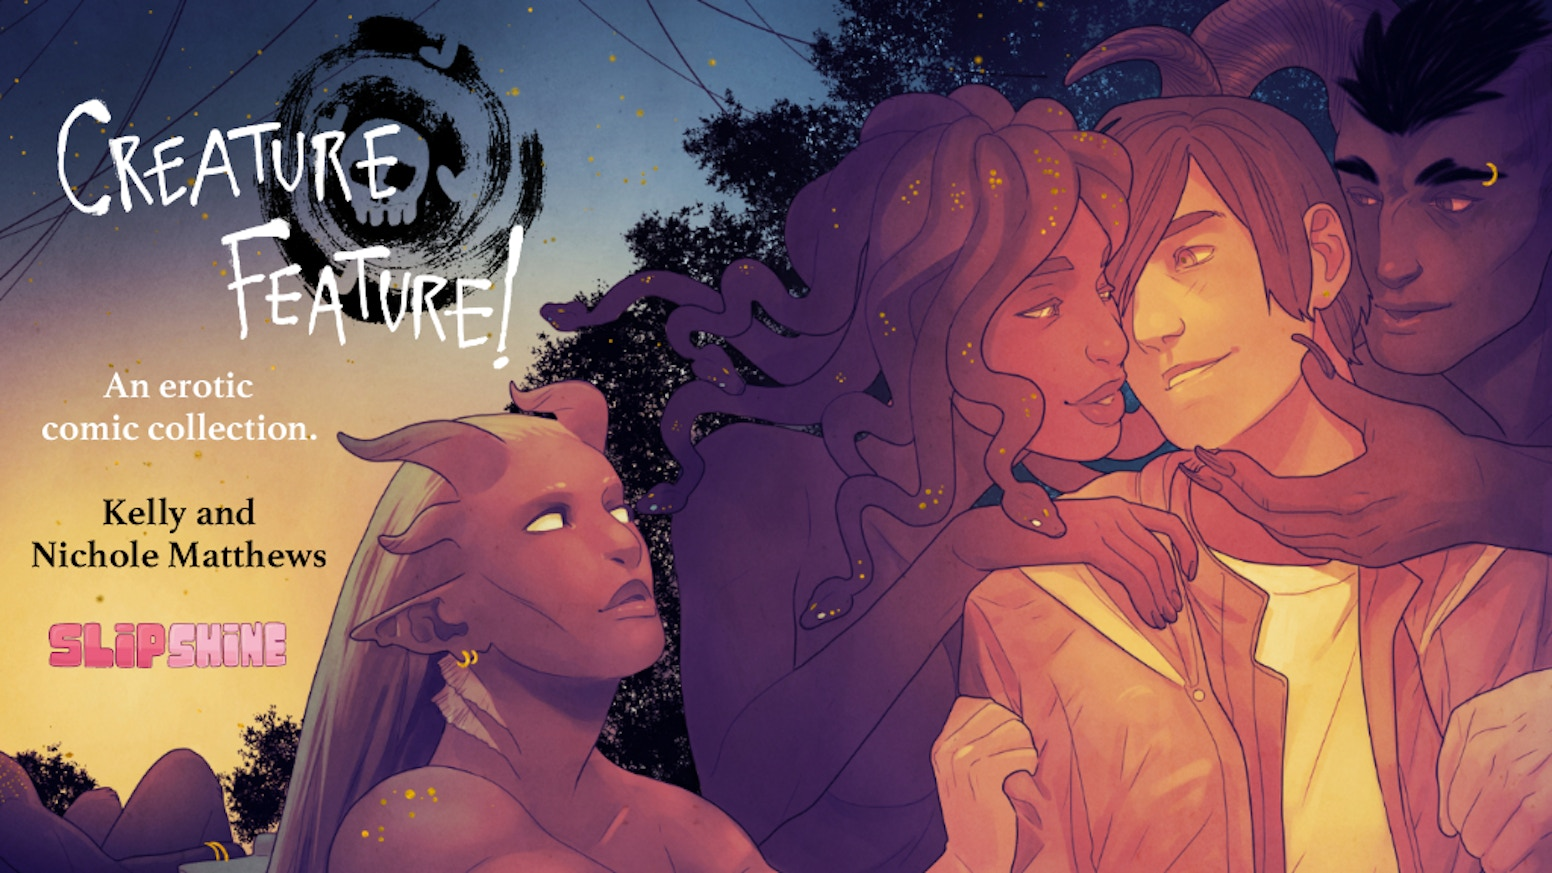 Creature Feature Vol 1 collects almost two years worth of erotic comics  written & drawn by